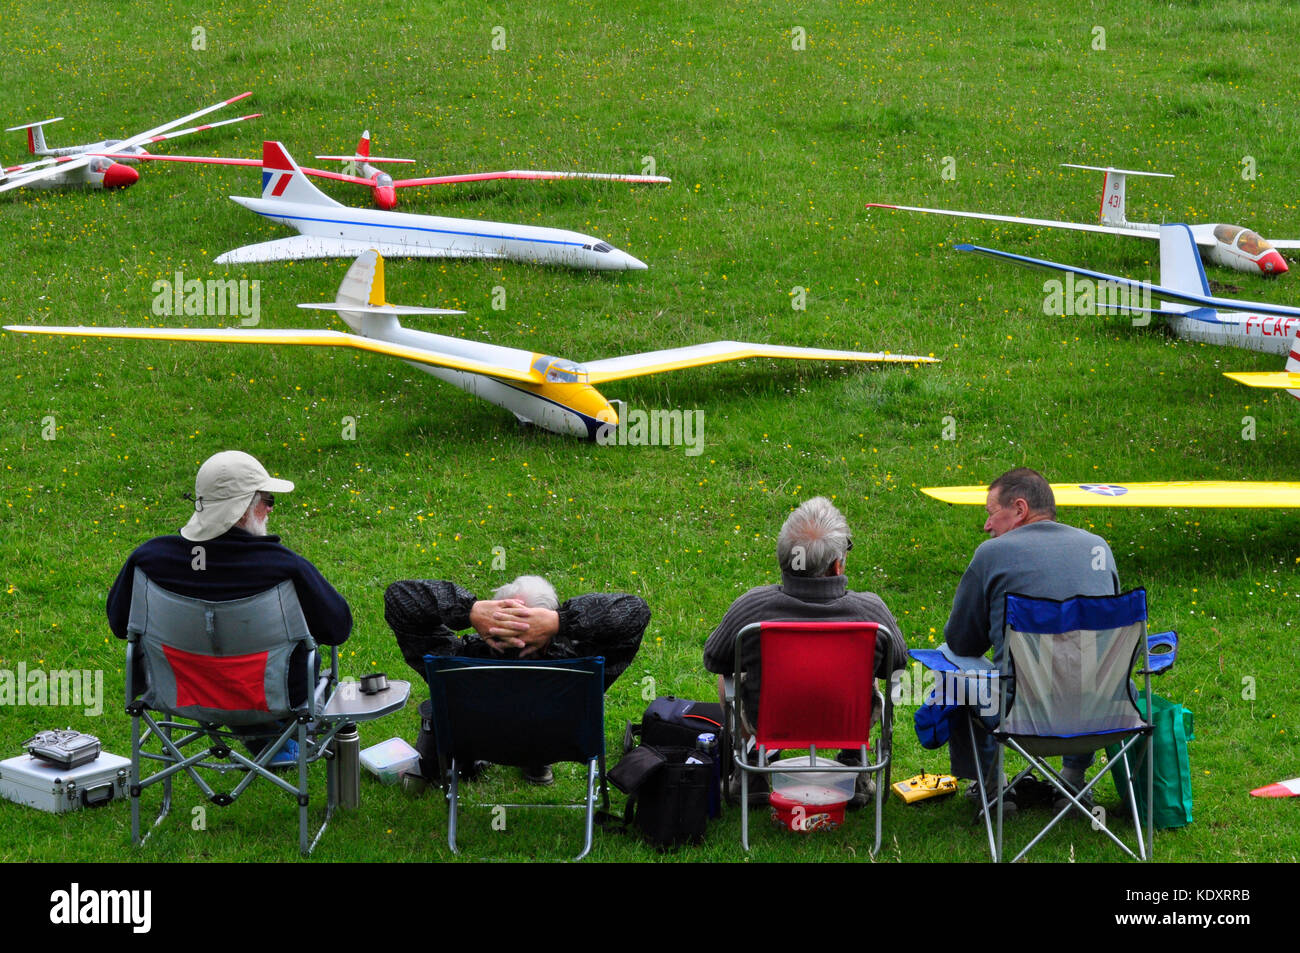 Radio controlled model gliders with their owners awaiting the right conditions for launching from White Sheet hill - Stock Image